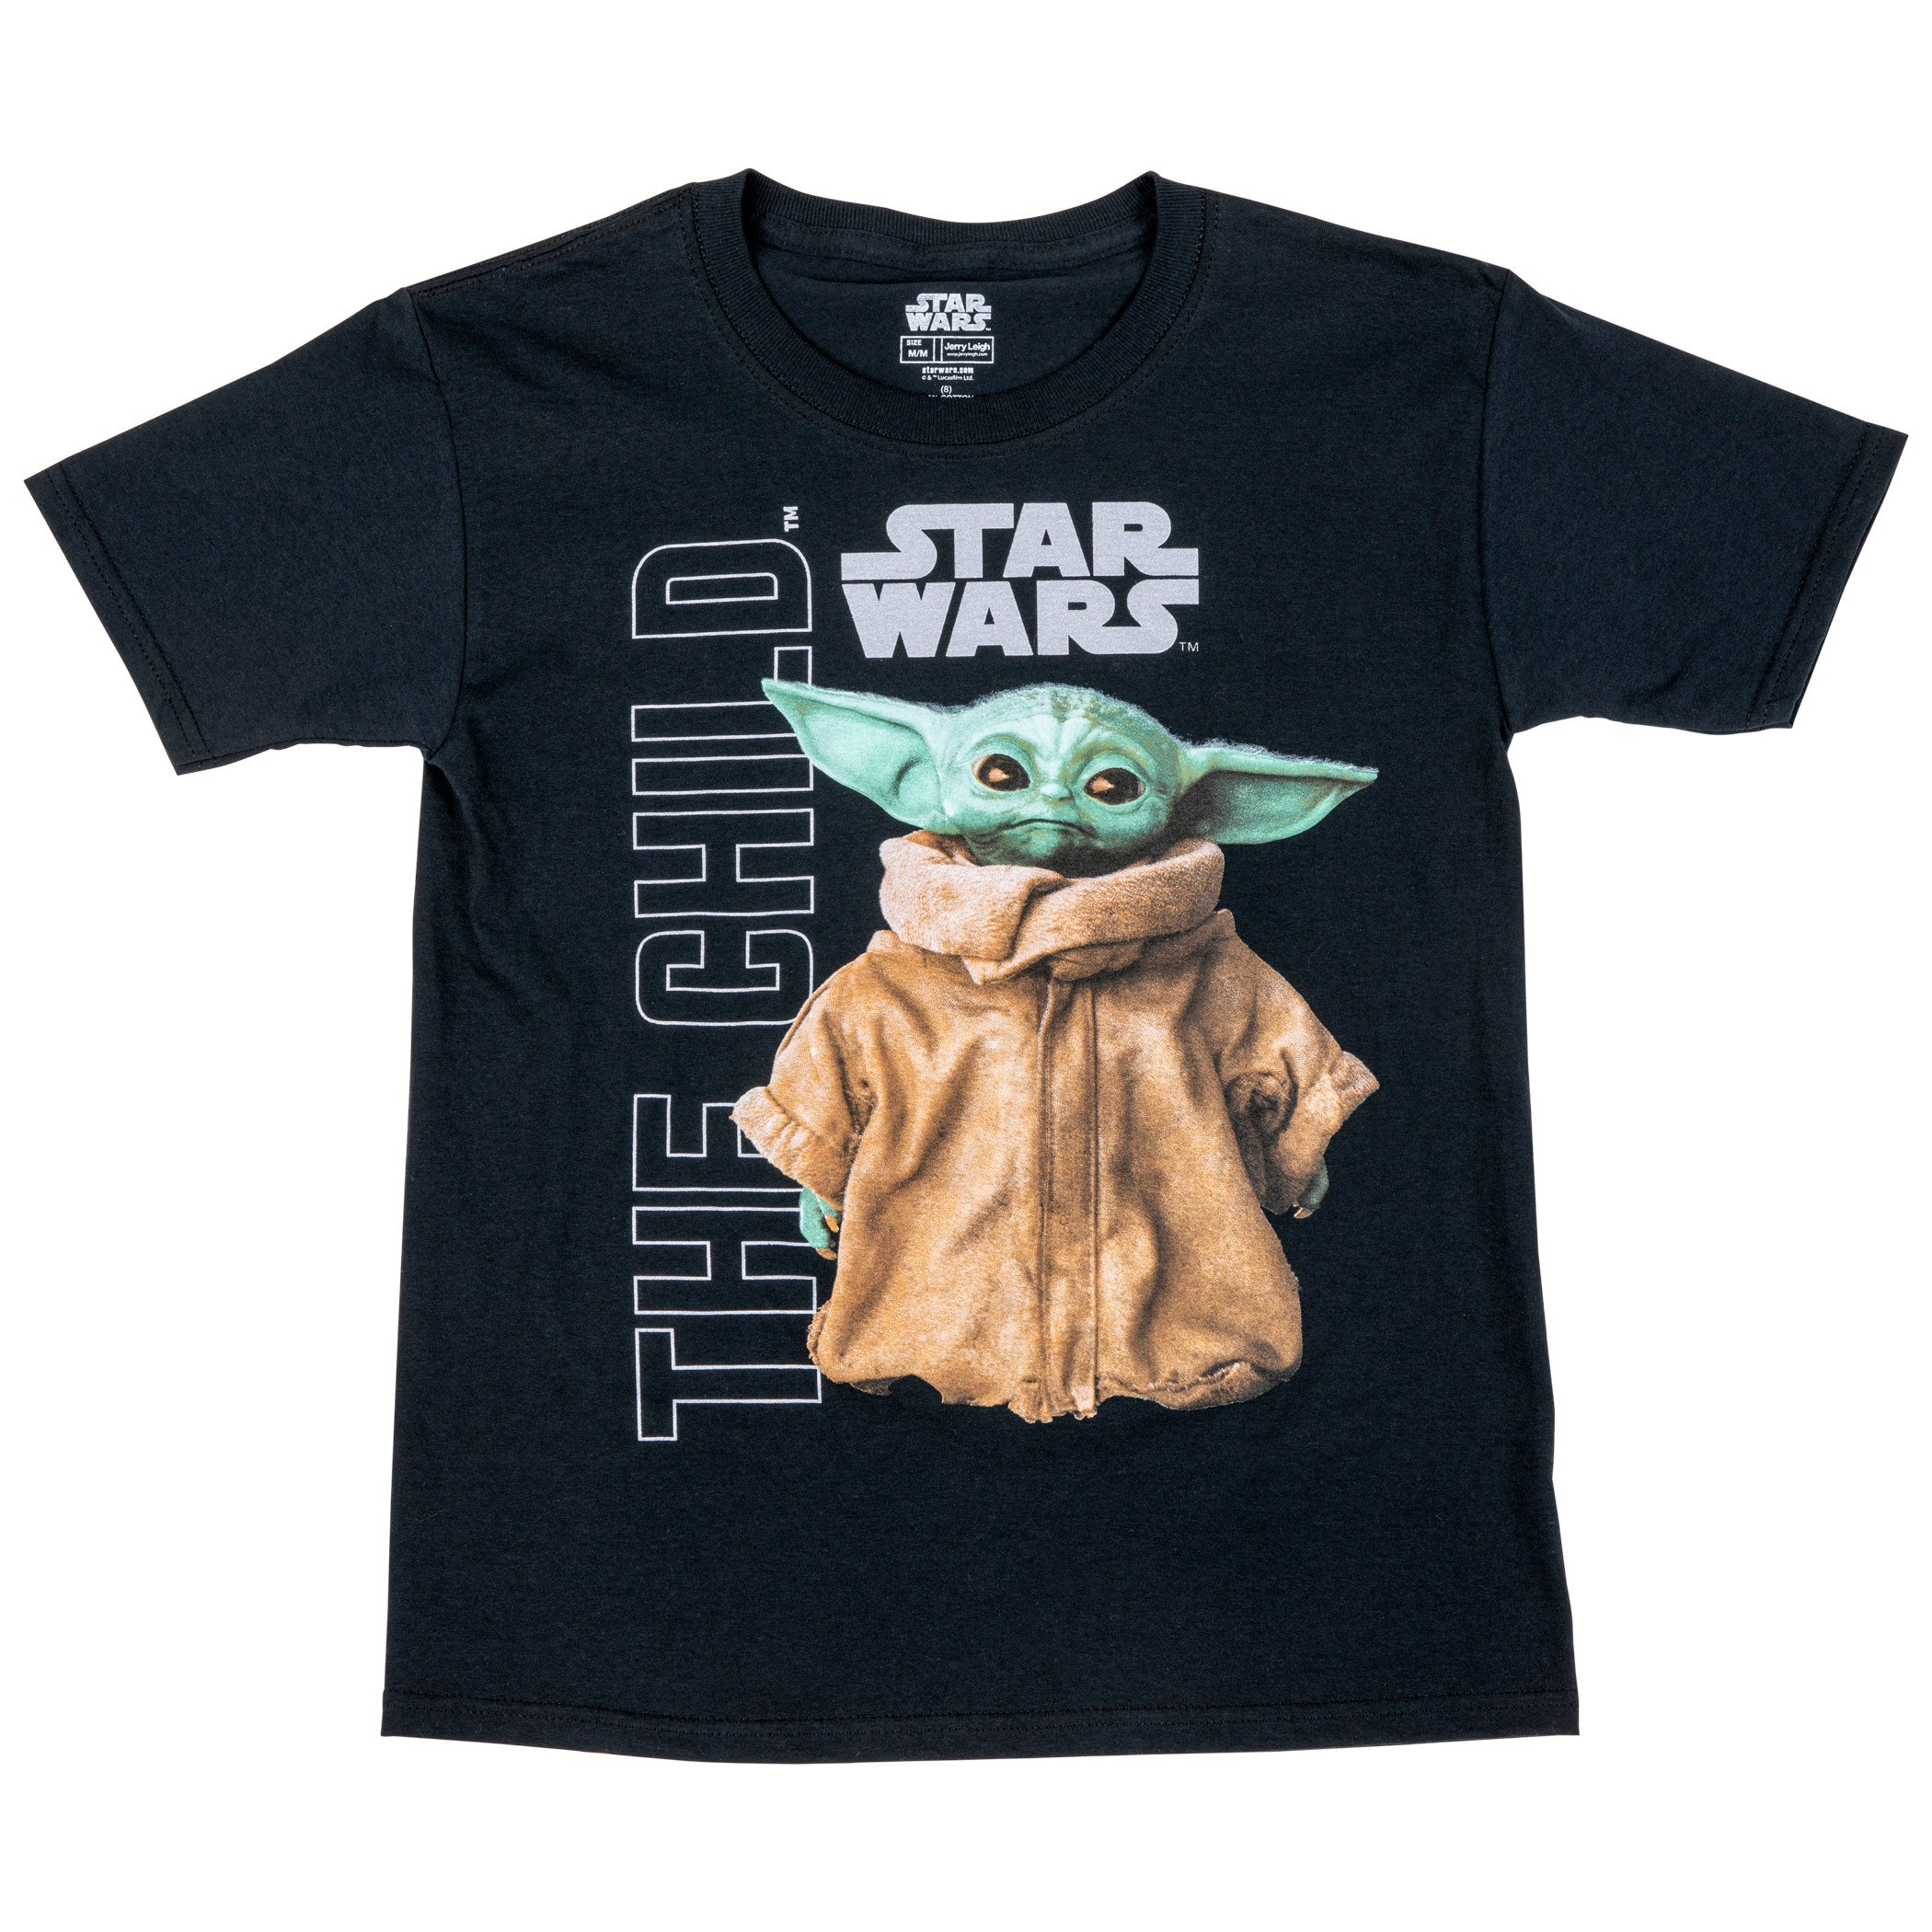 Star Wars The Mandalorian The Child Character Kids T-Shirt